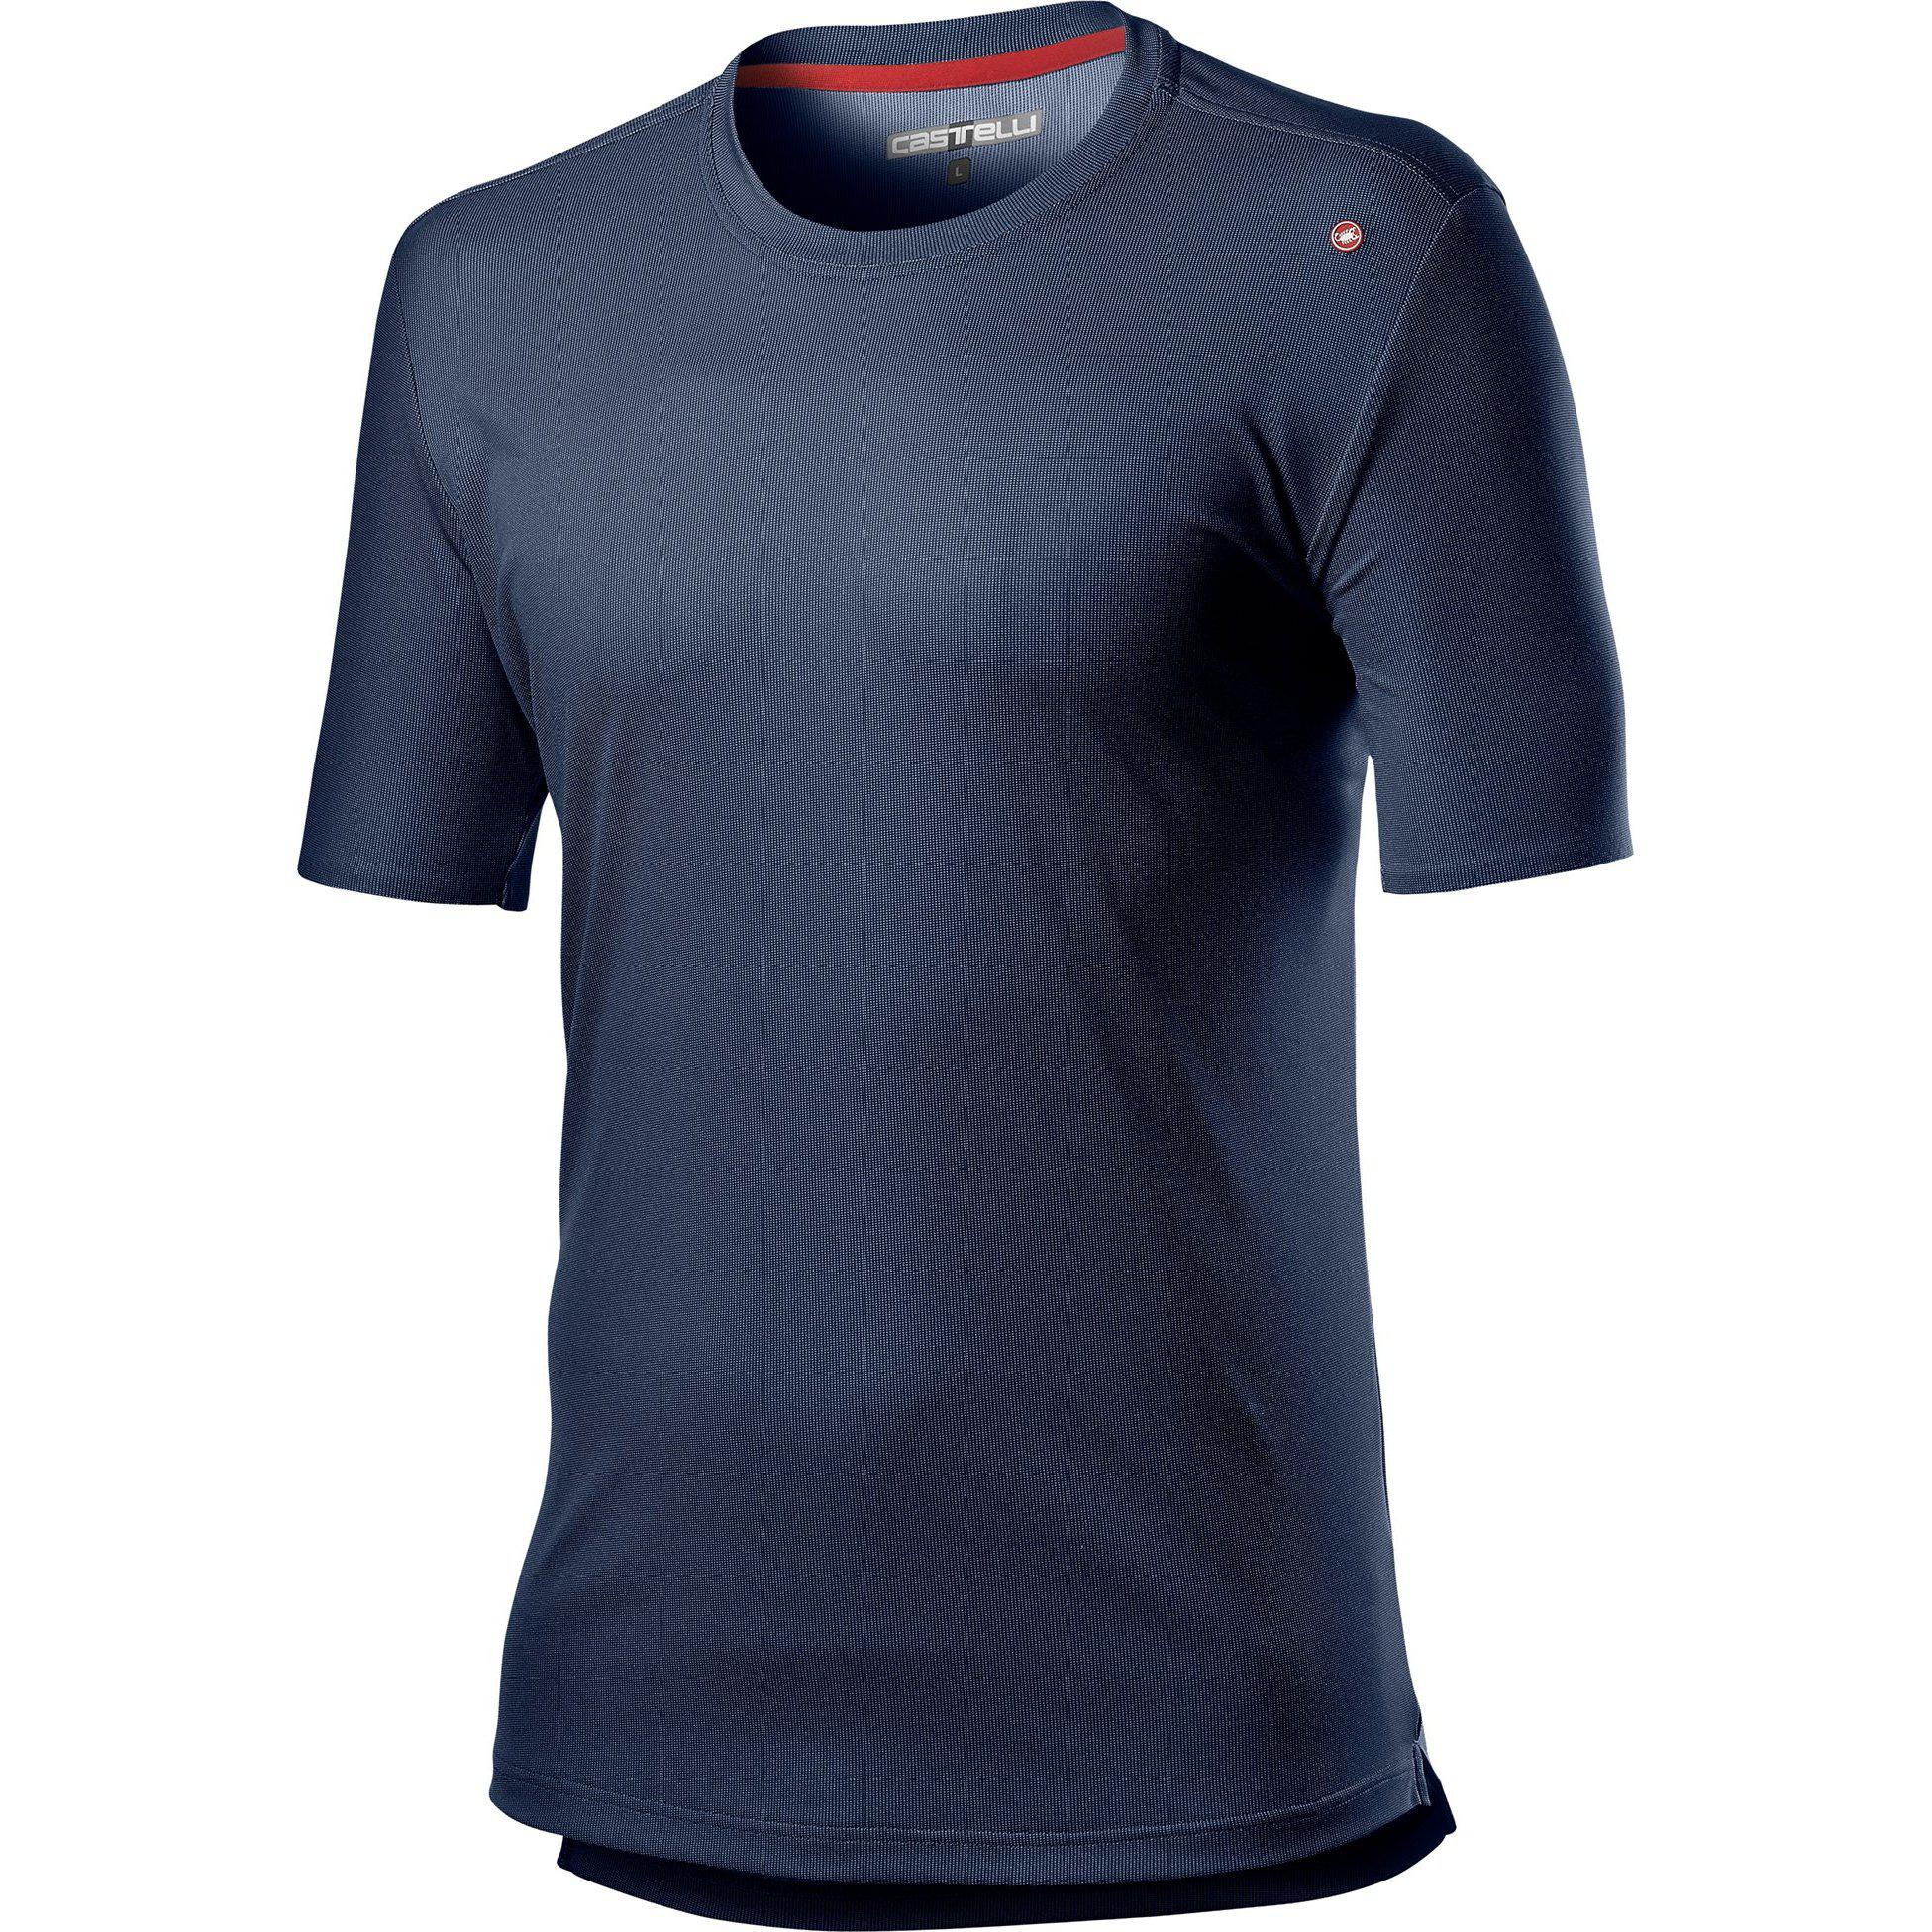 Castelli-Castelli Tech T-Shirt-Dark Infinity Blue-XS-CS201060411-saddleback-elite-performance-cycling